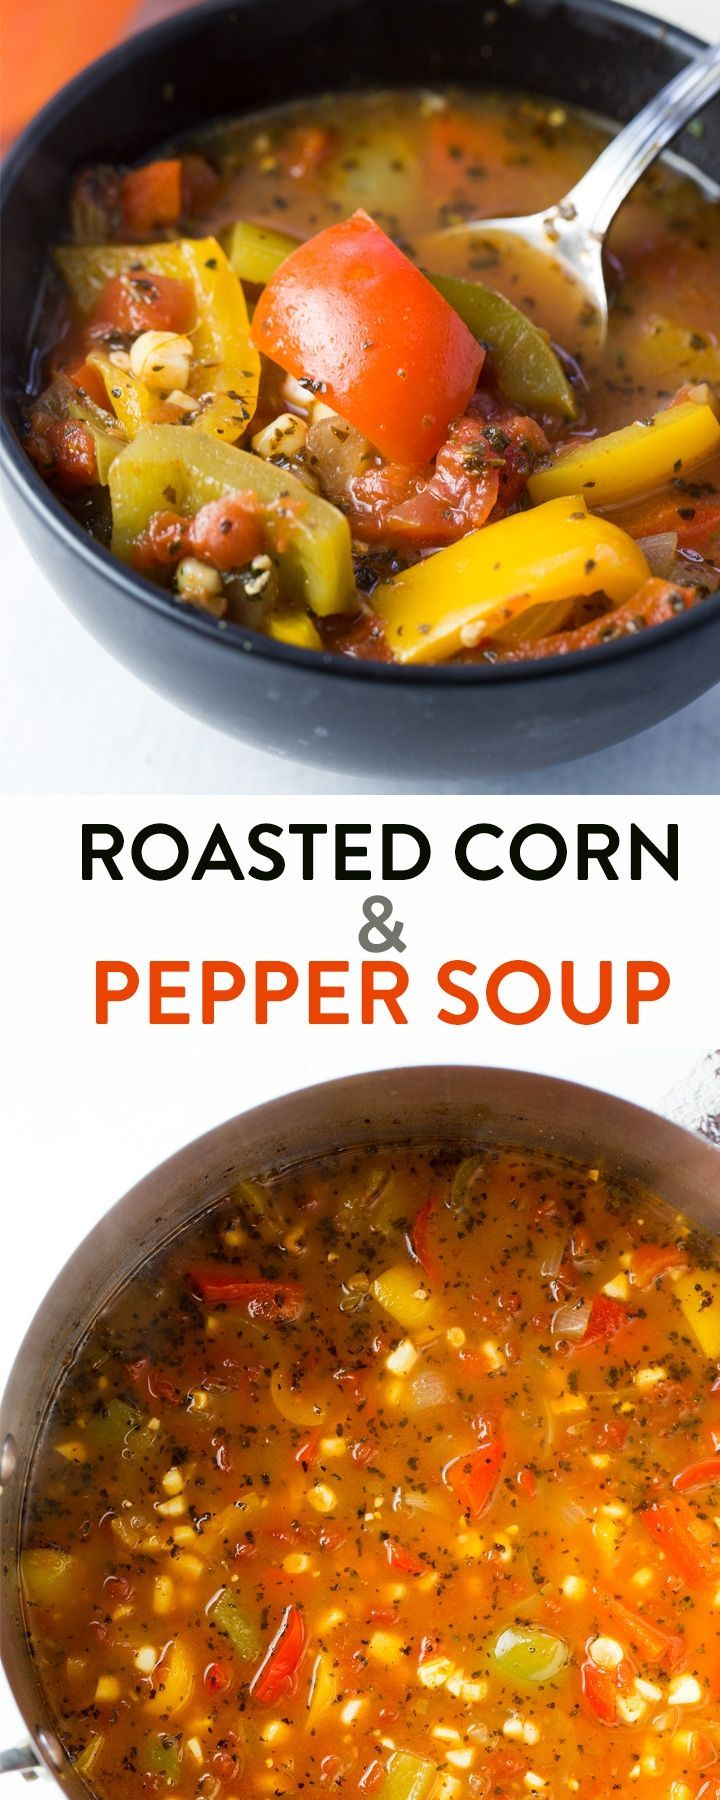 Roasted Corn and Pepper Soup Recipe Stuffed peppers